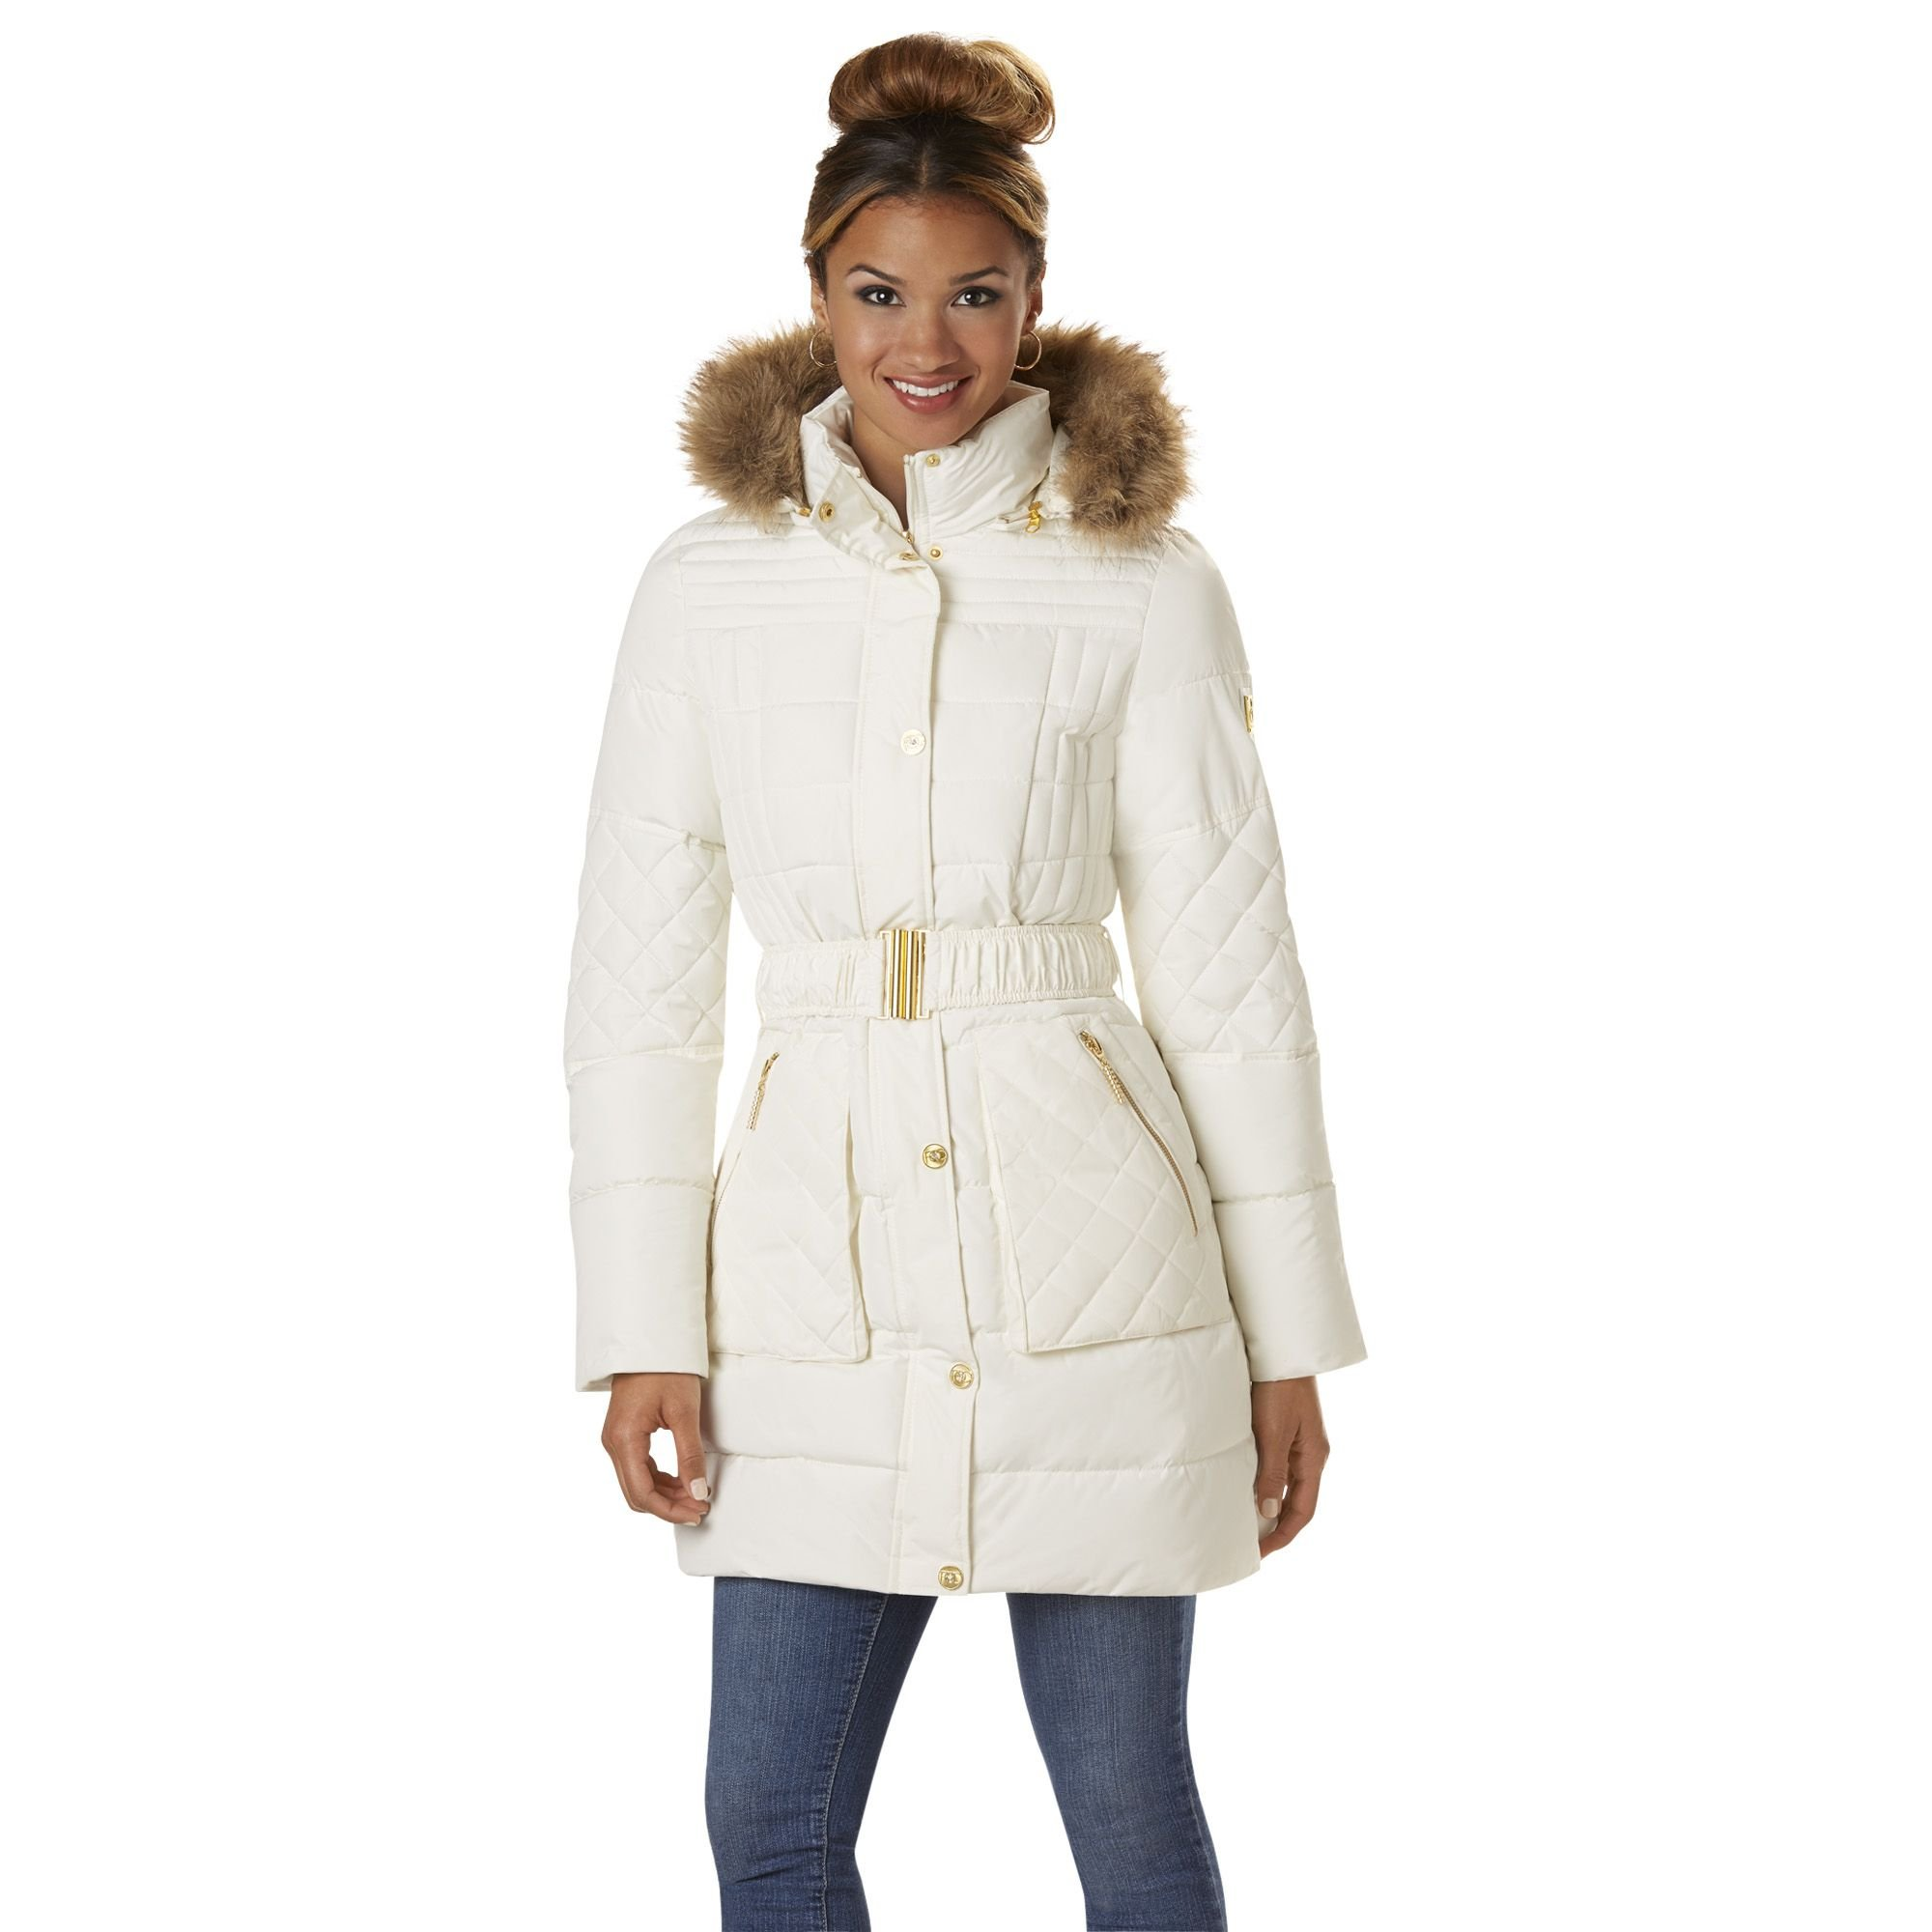 Rocawear Misses' Quilted Puffer w/ Belt by Rocawear